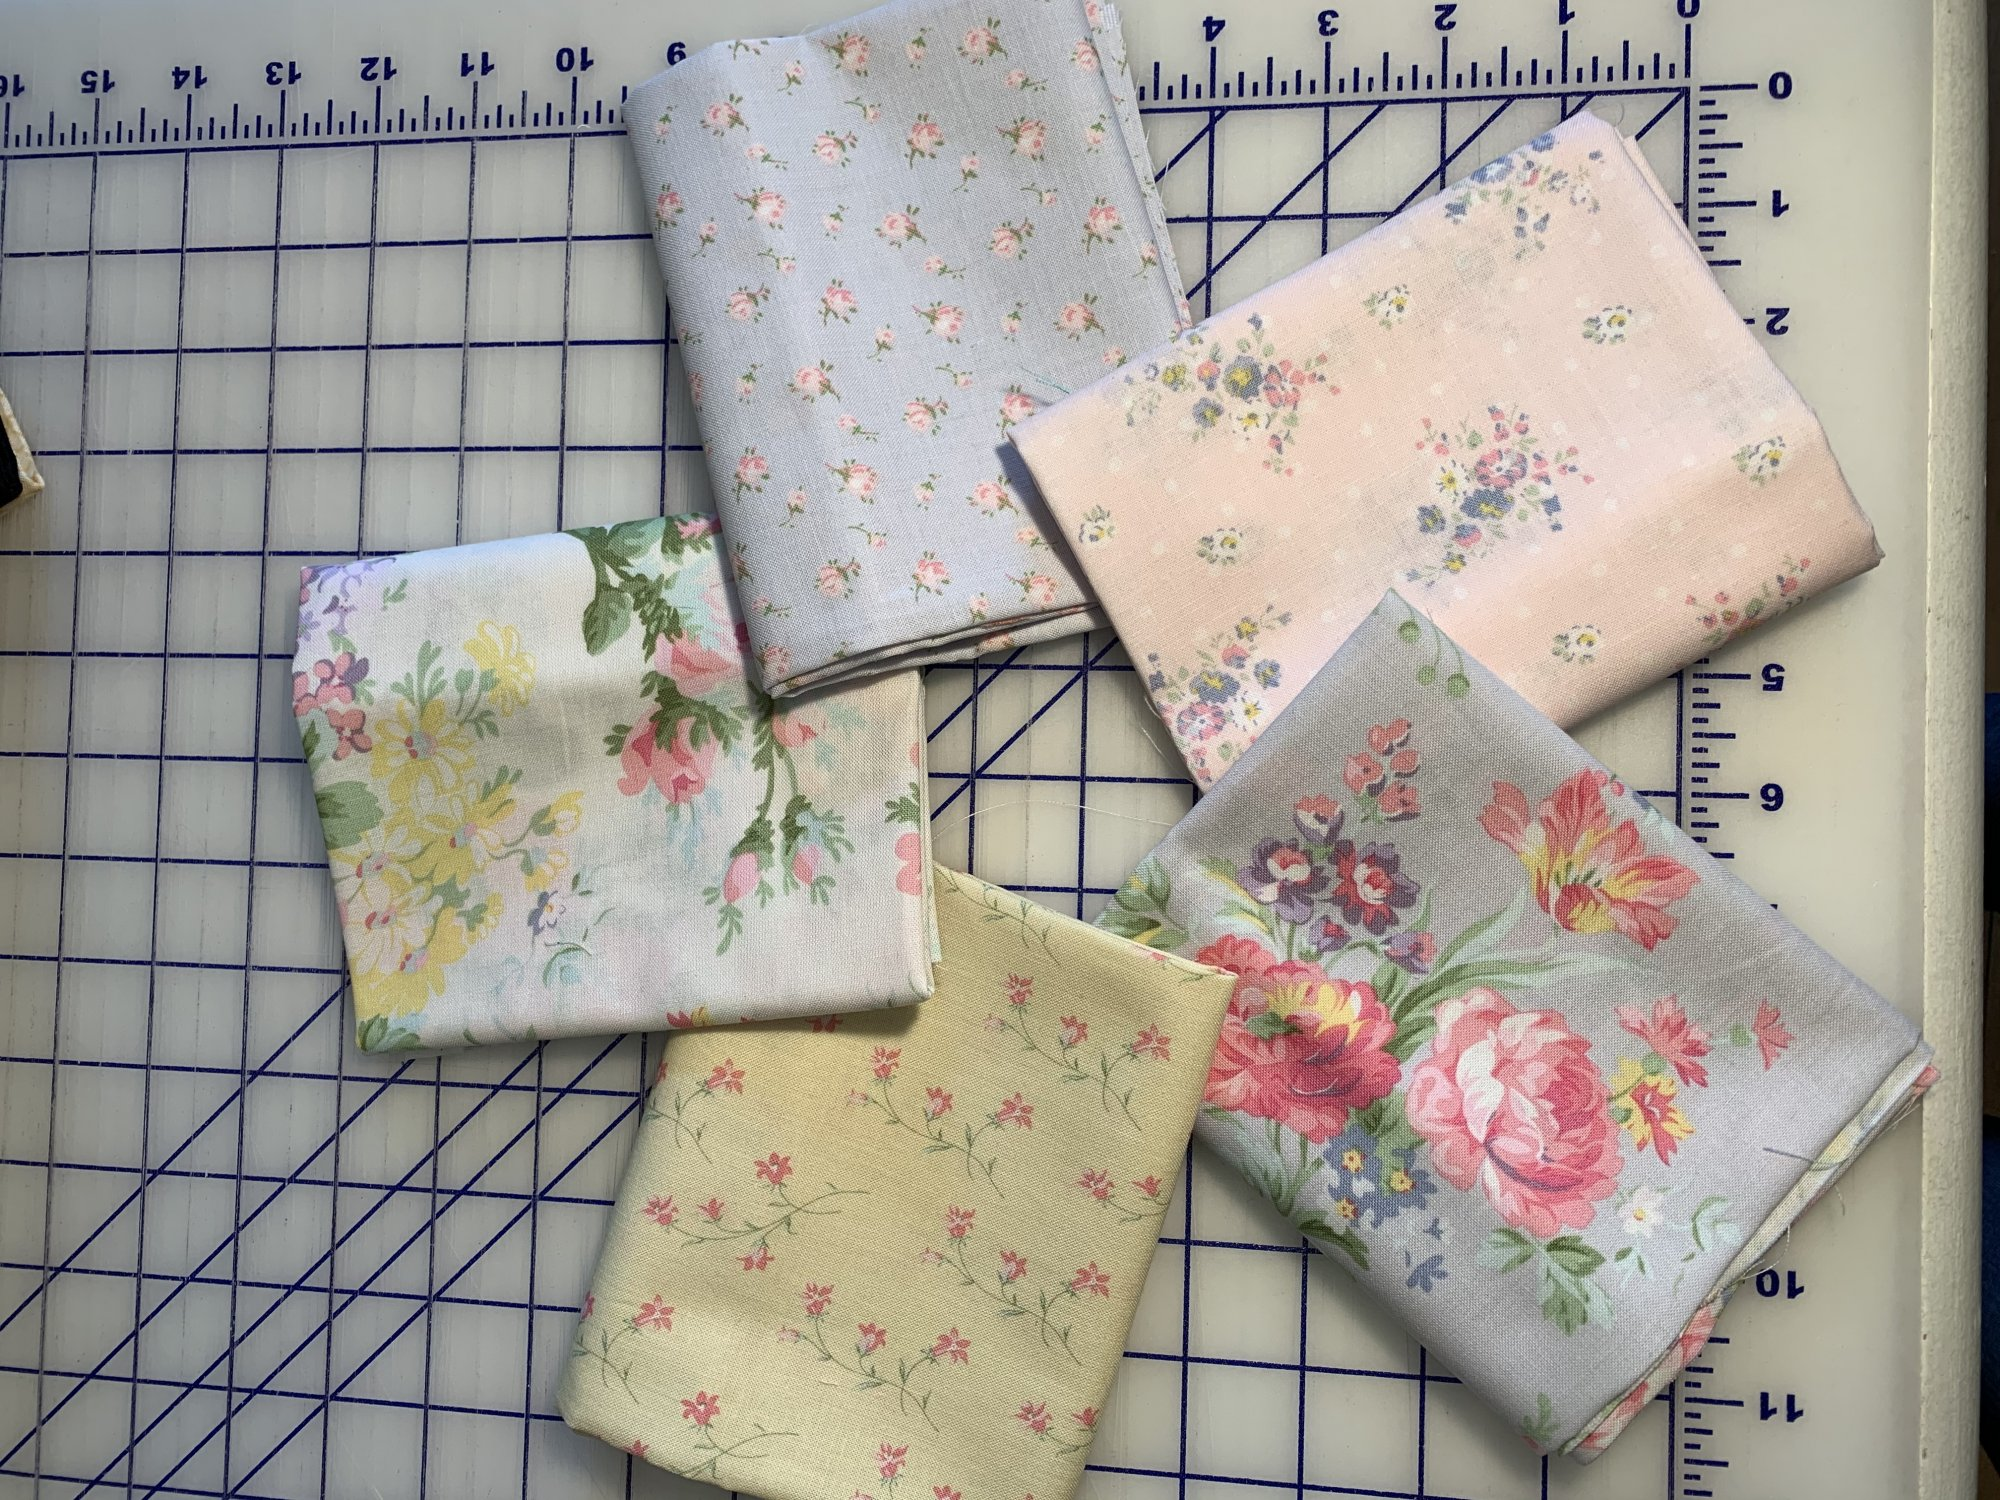 Roslyn 1/2 YD Bundle